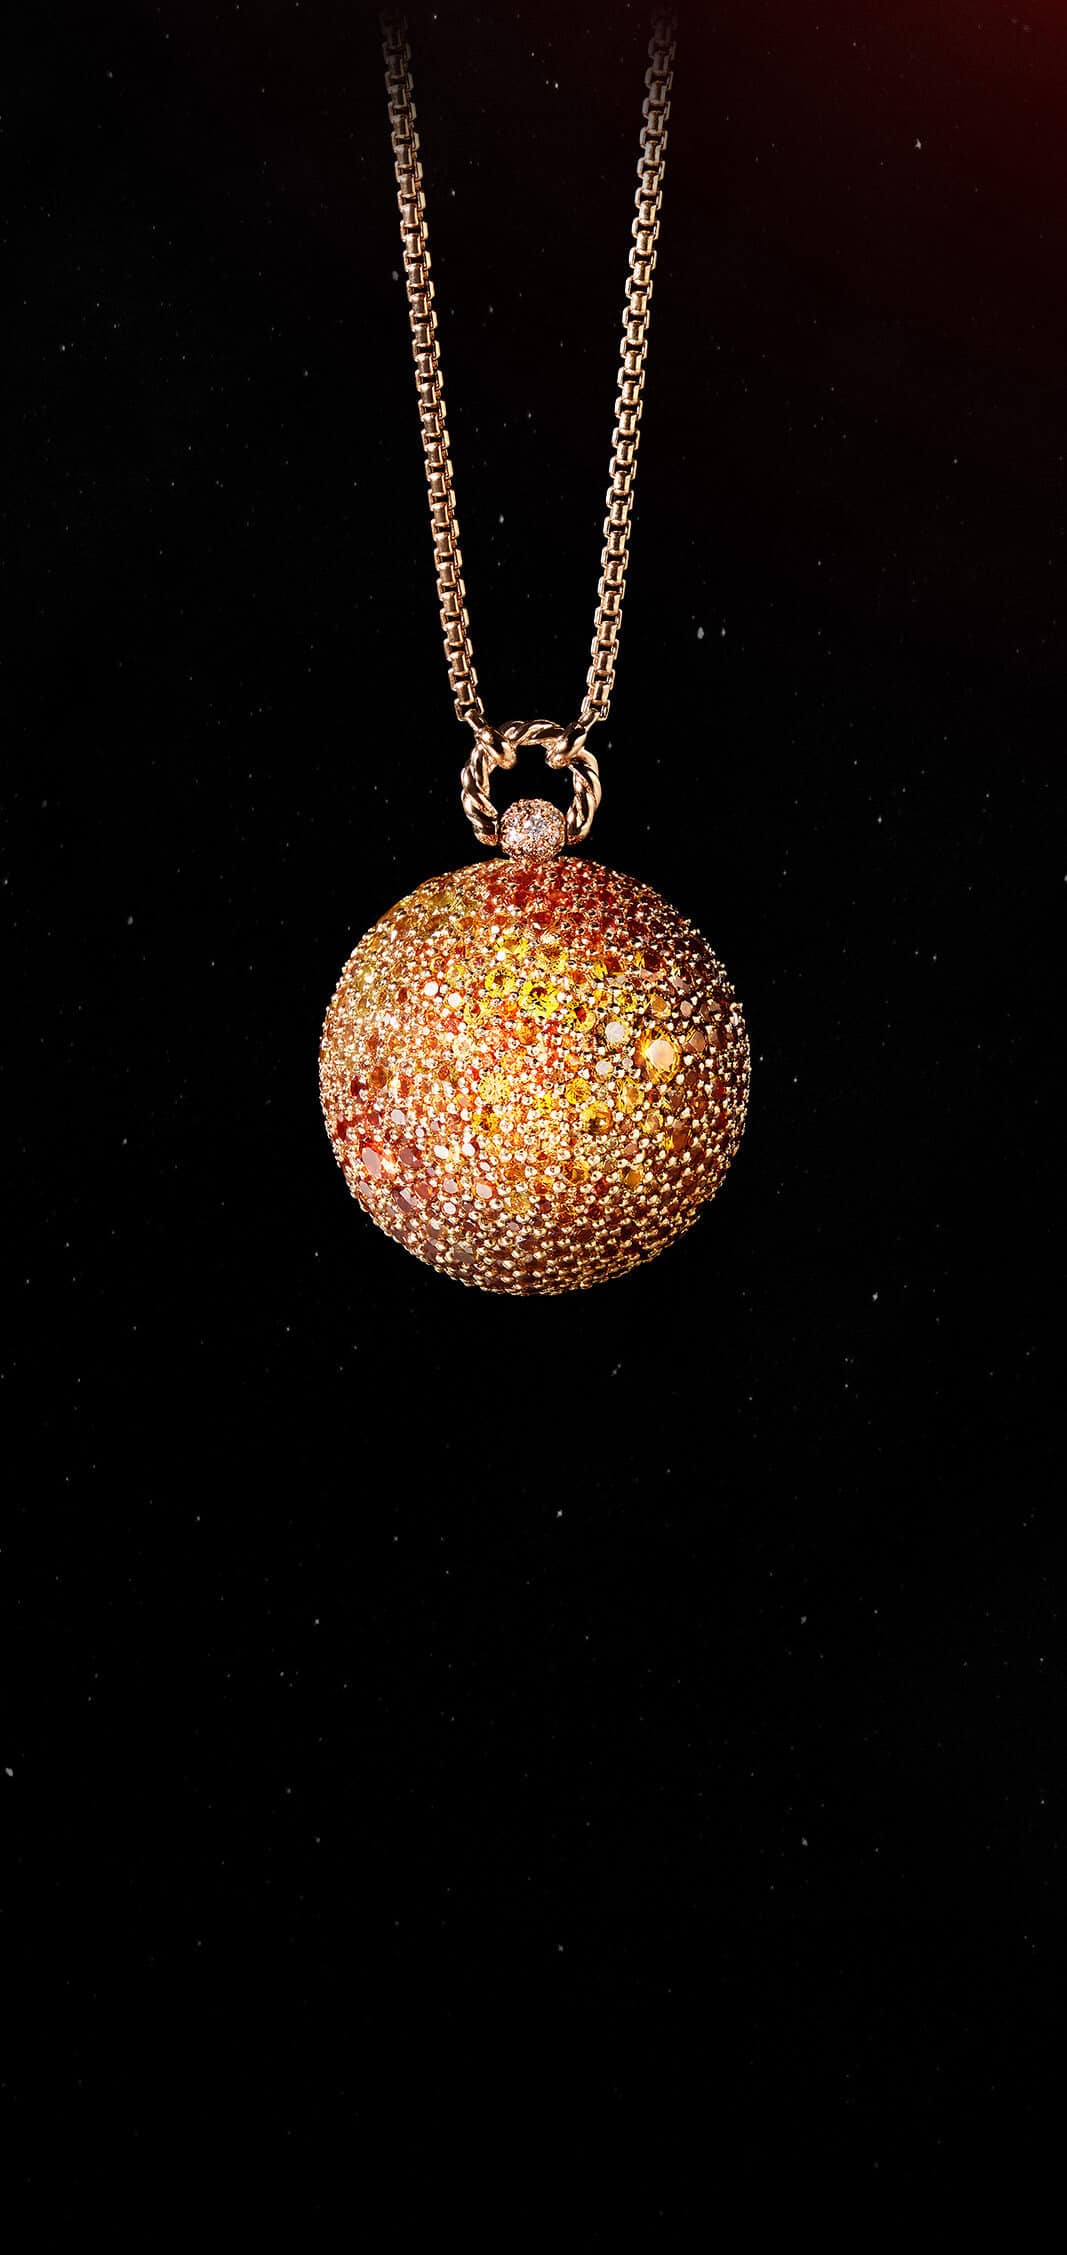 A color photo shows the David Yurman Solari Planet Sun pendant necklace in front of a starry night sky. The pendant is crafted from 18K rose gold with yellow and orange sapphires.